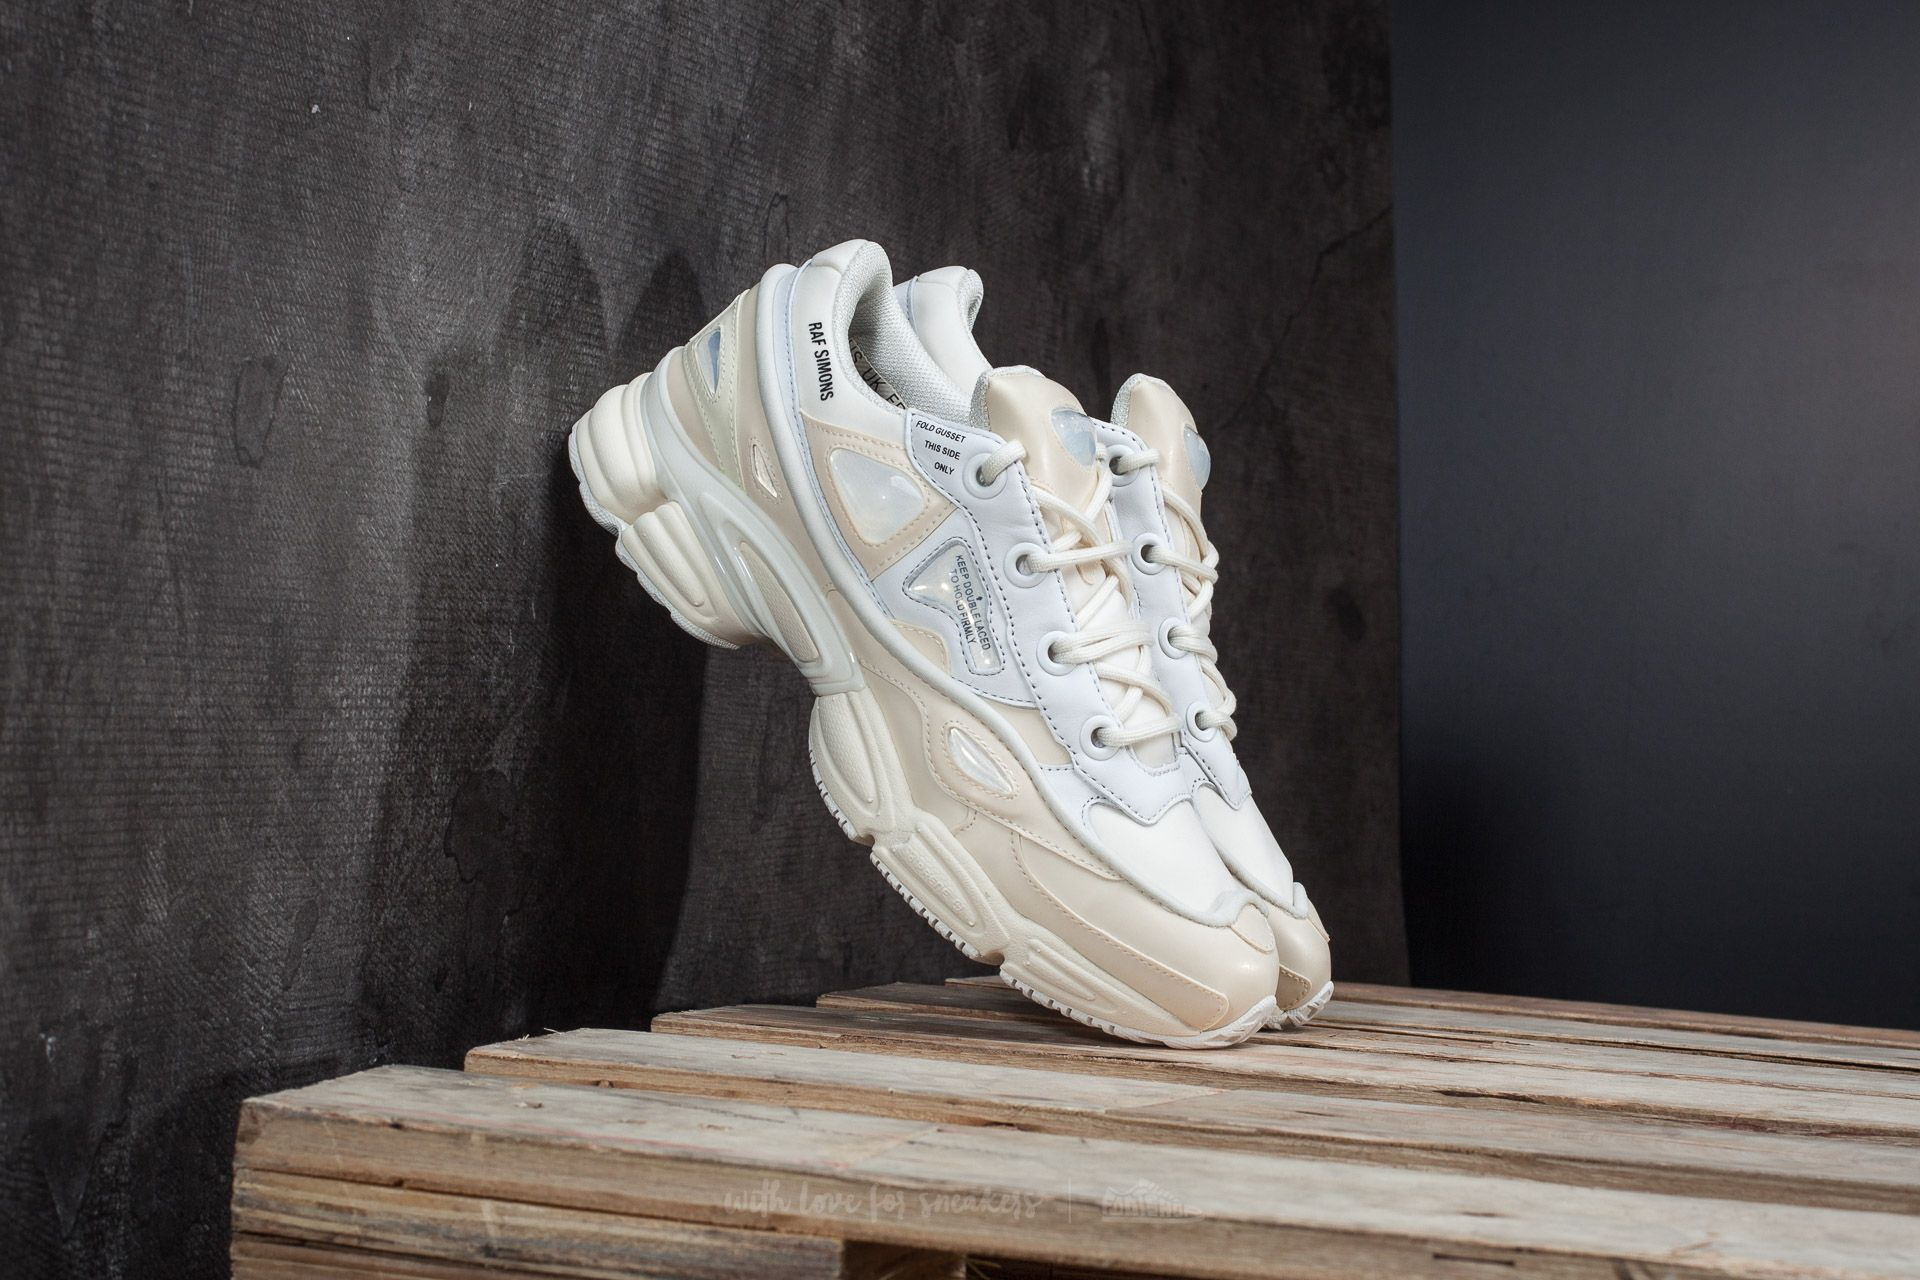 d38a2db5fc92 adidas x Raf Simons Ozweego Bunny Core White  Crystal White  Core ...